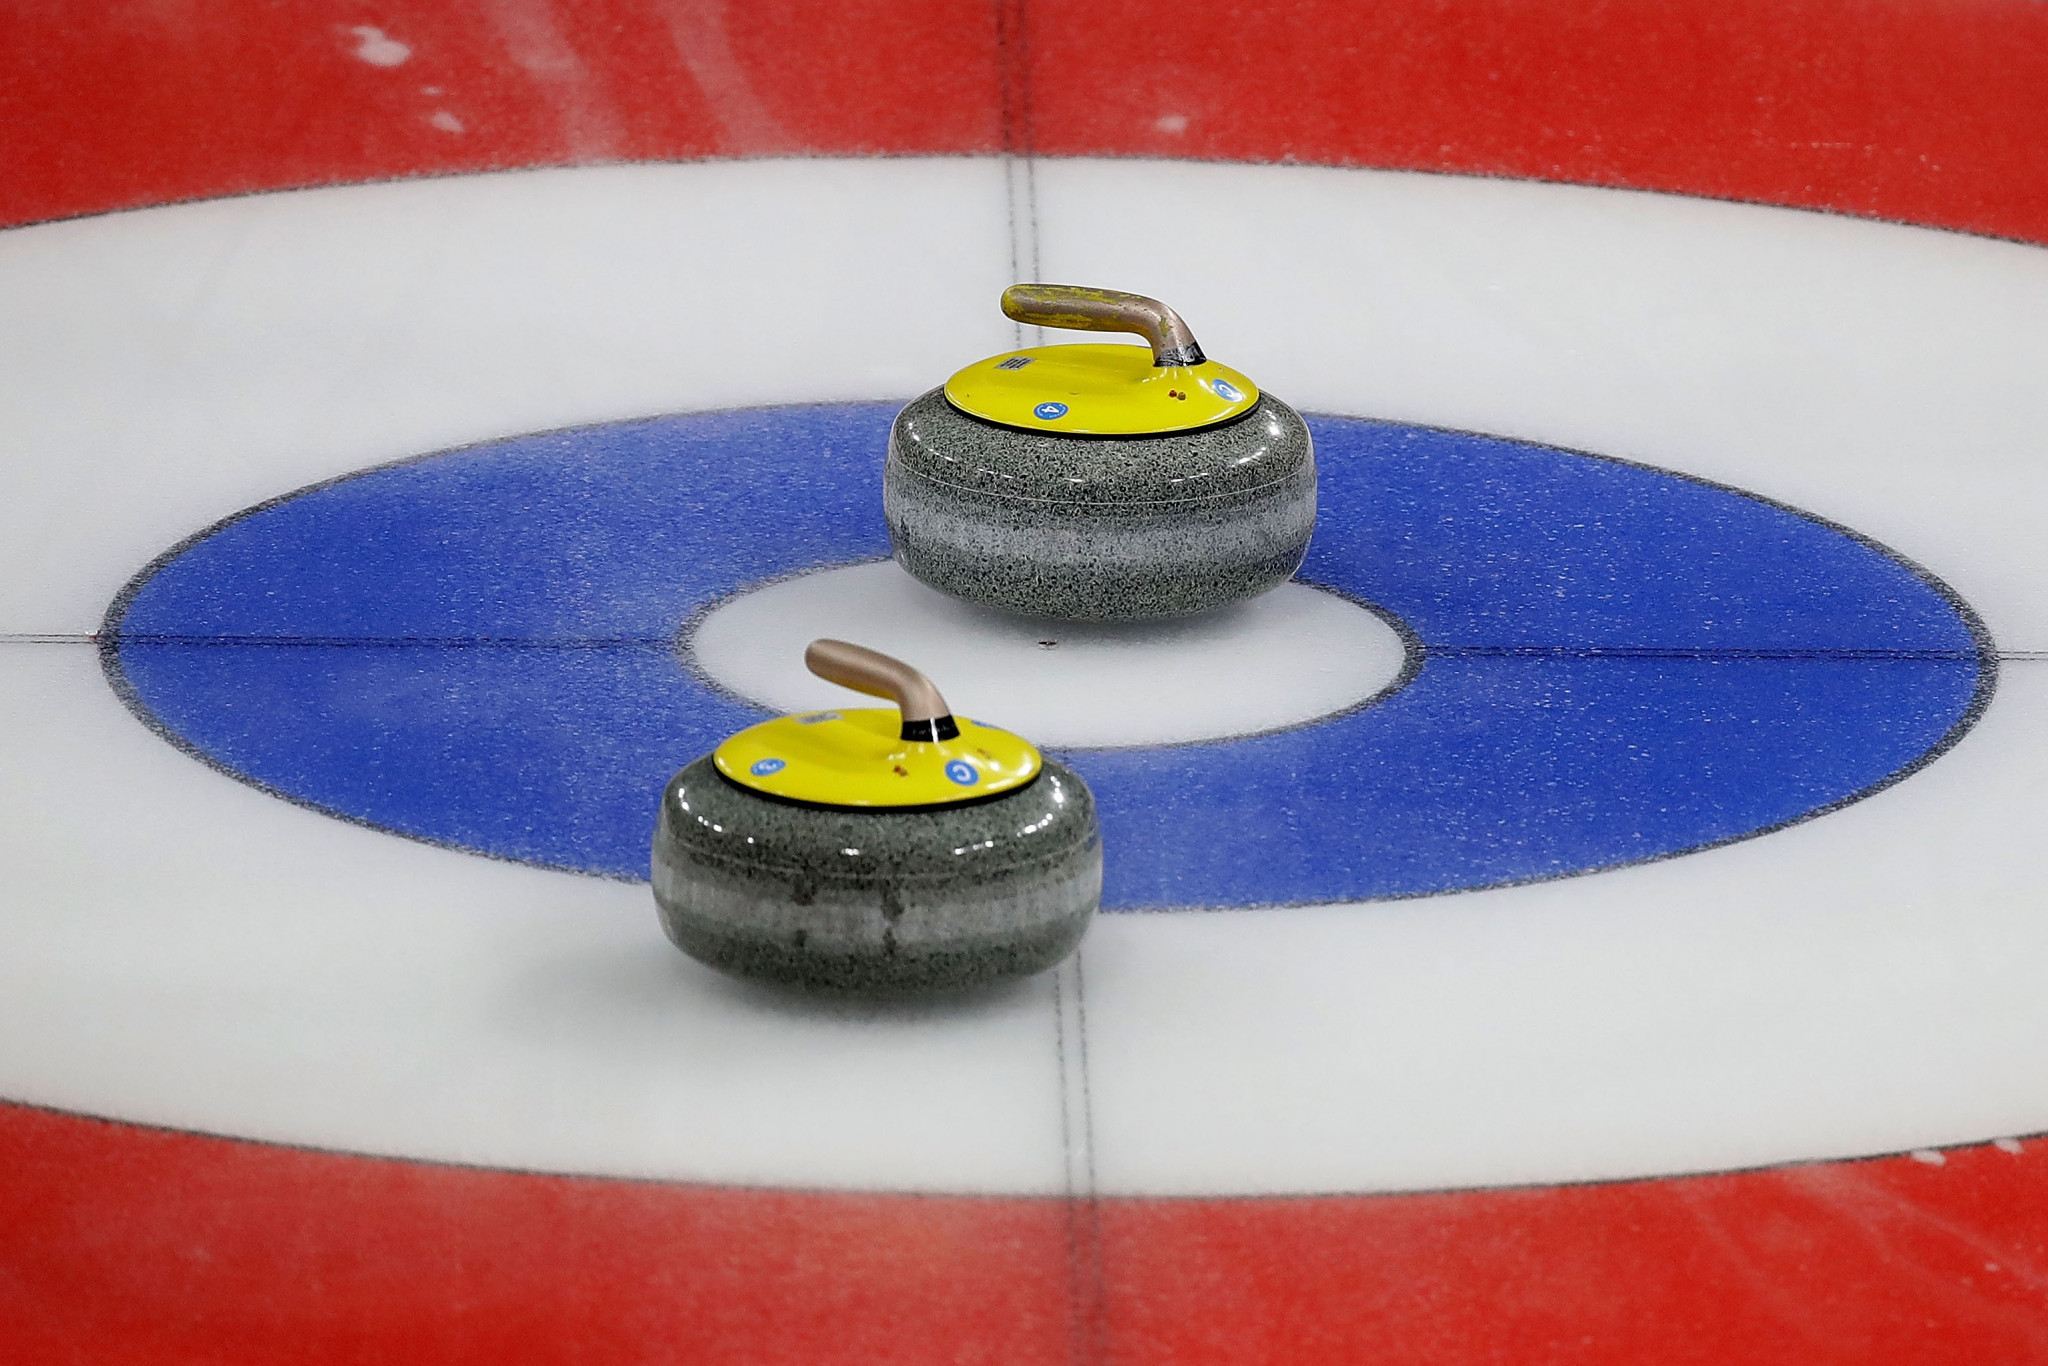 Germany and United States unbeaten at the World Junior Curling Championships